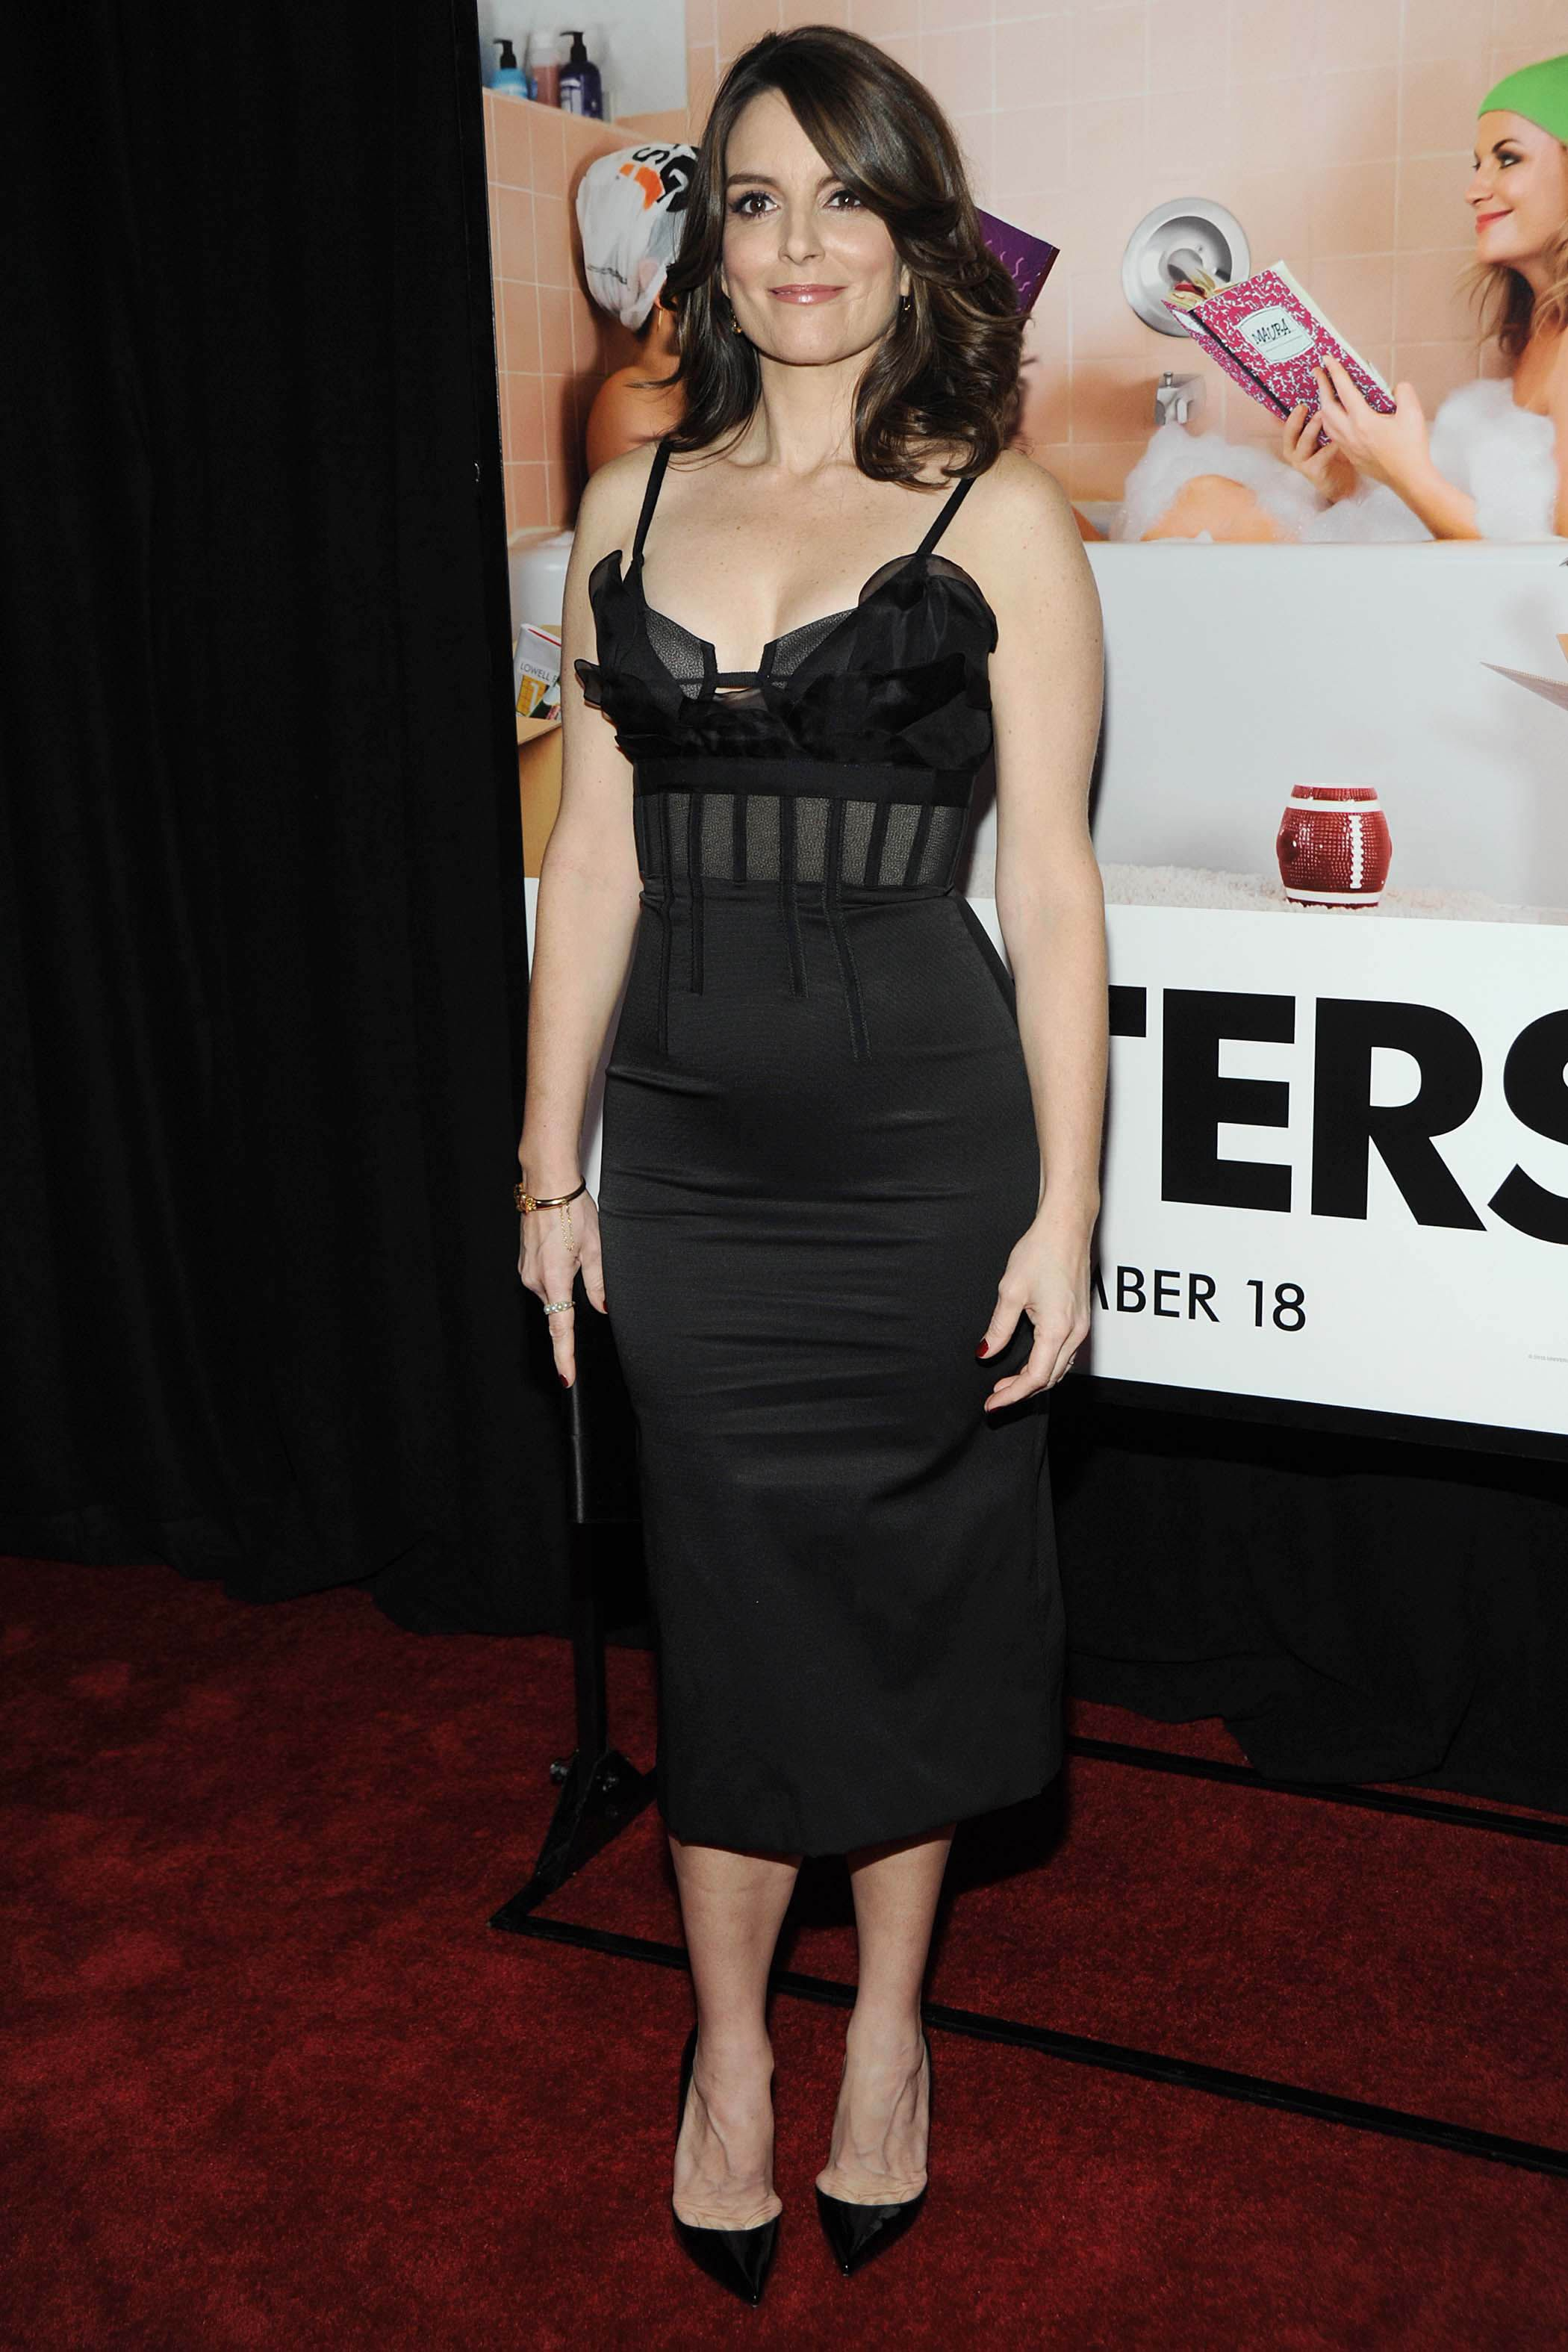 Tina Fey attends the 'Sisters' world premiere at Ziegfeld Theater on December 8, 2015 New York City.